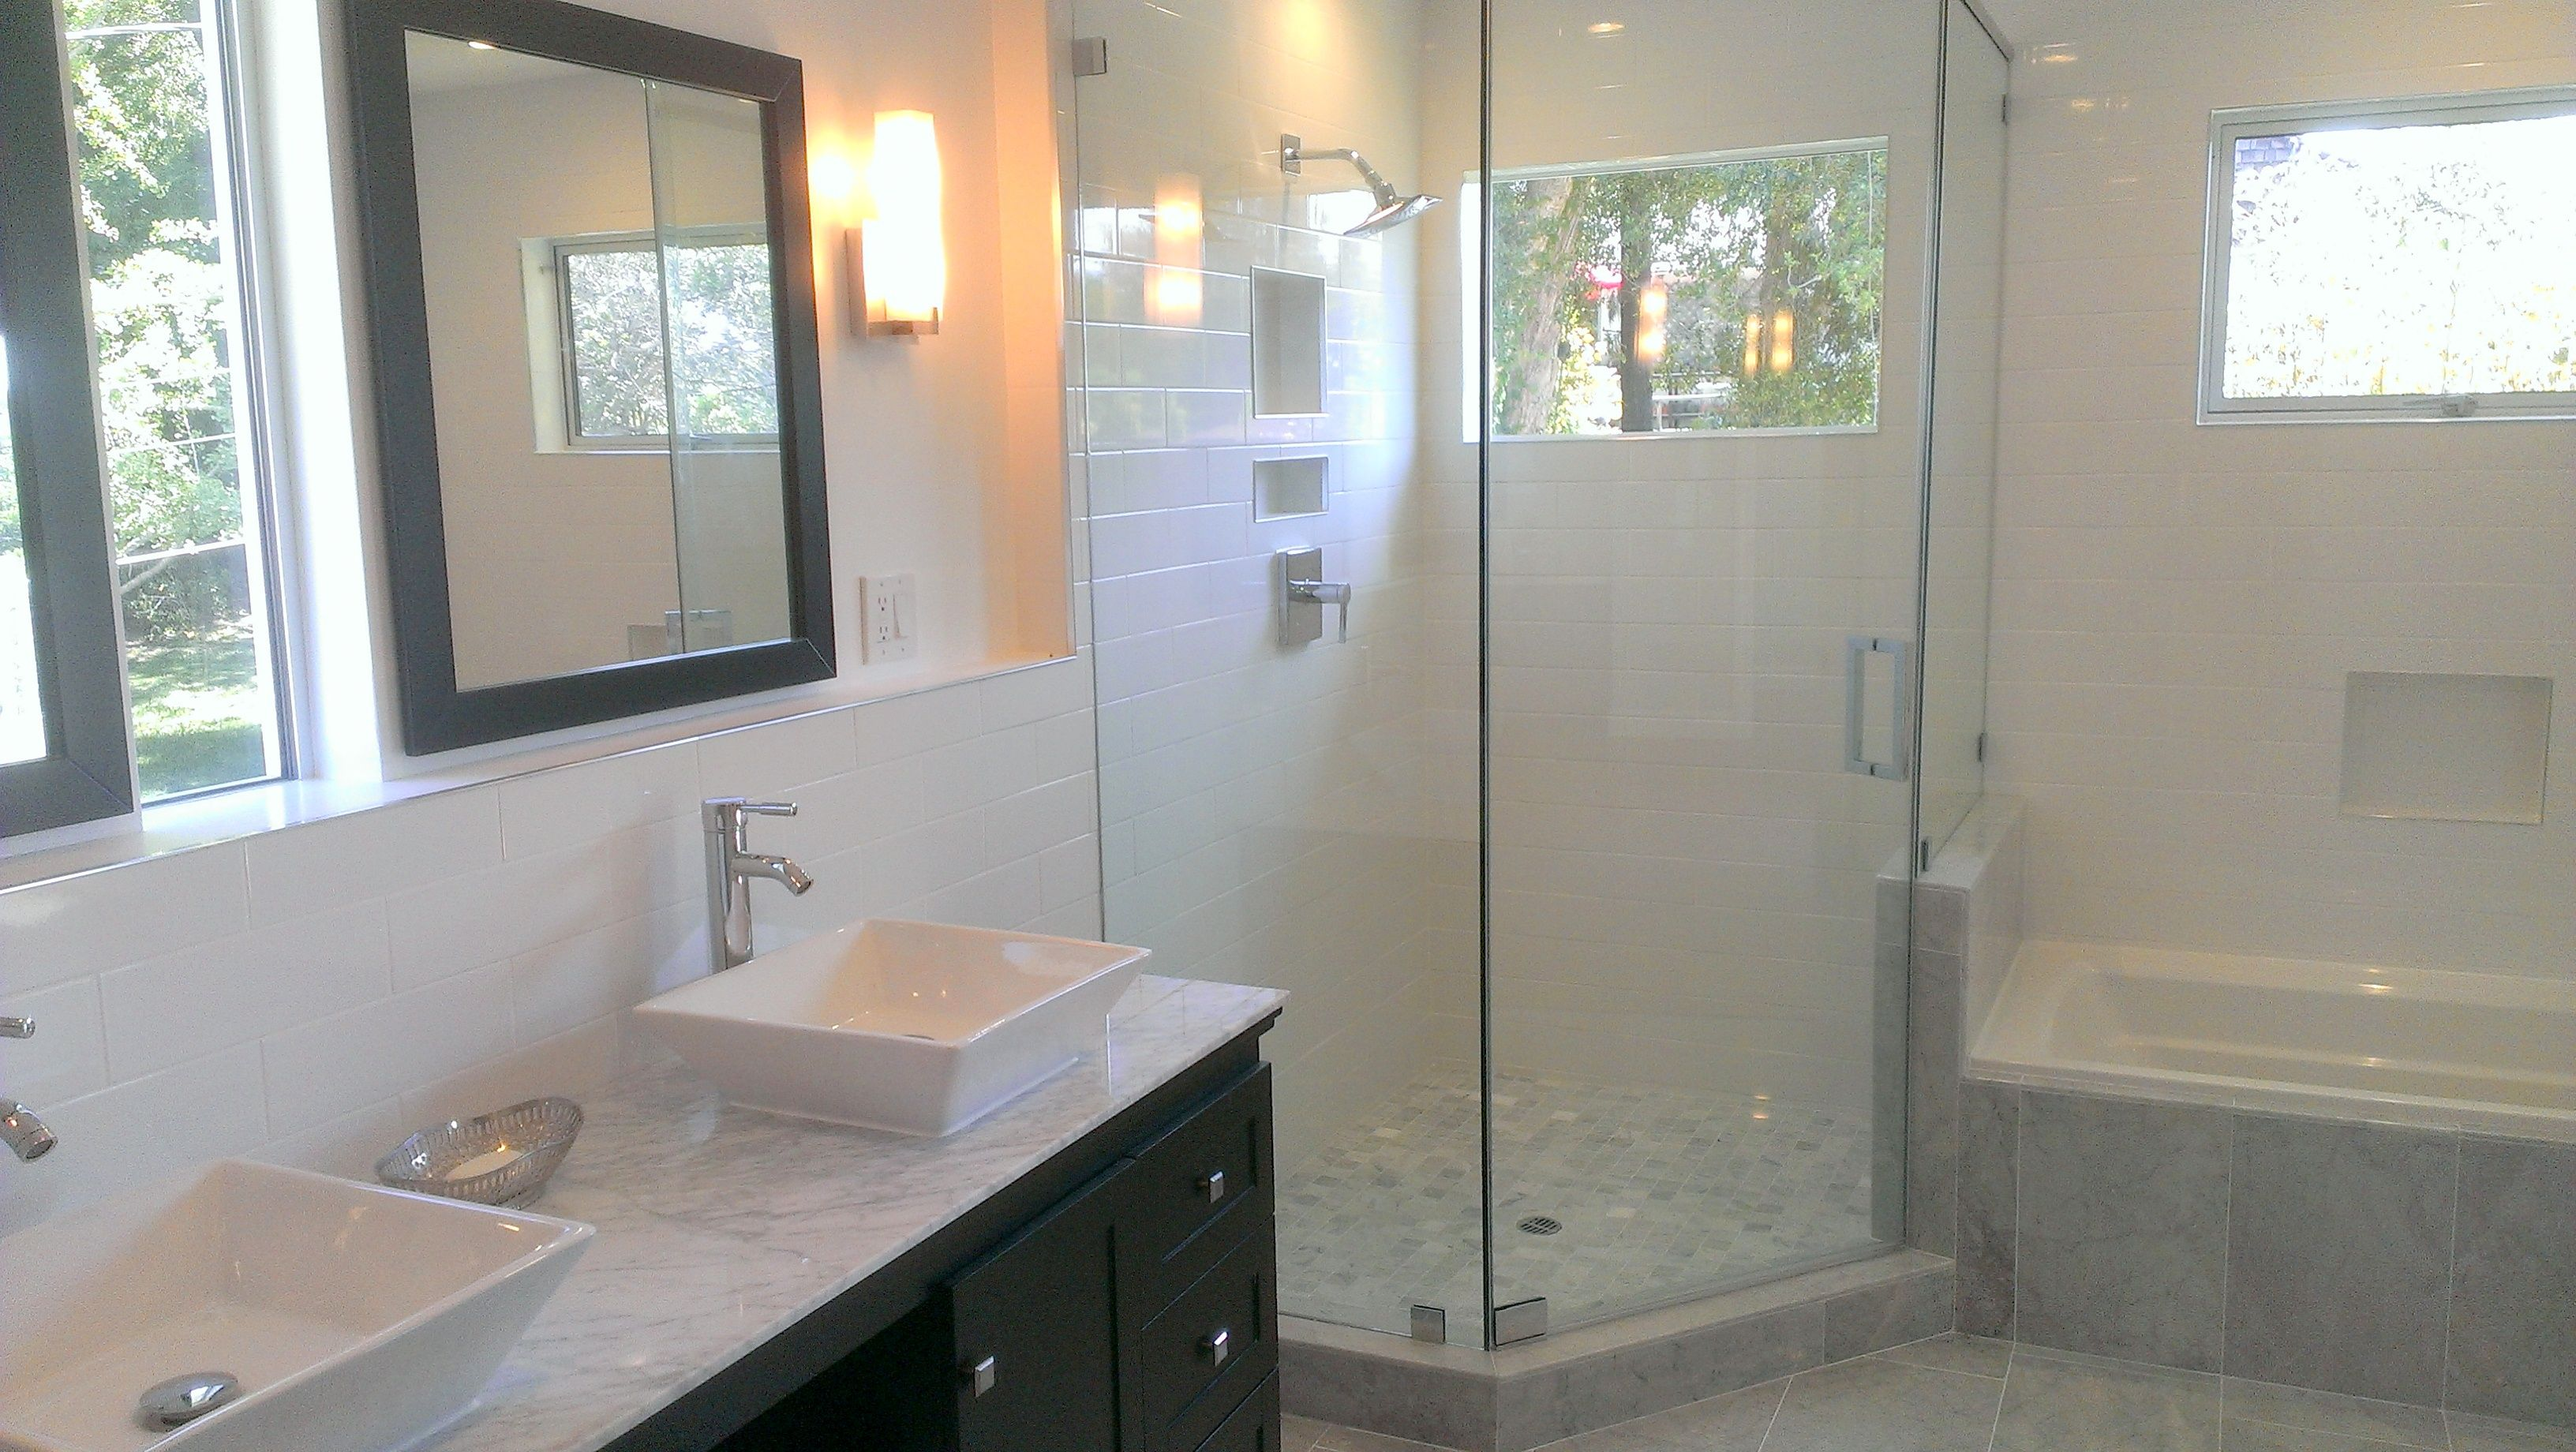 Los Angeles Kitchenmaster Bedroom And Bath Two Story Additionremodel Architectural